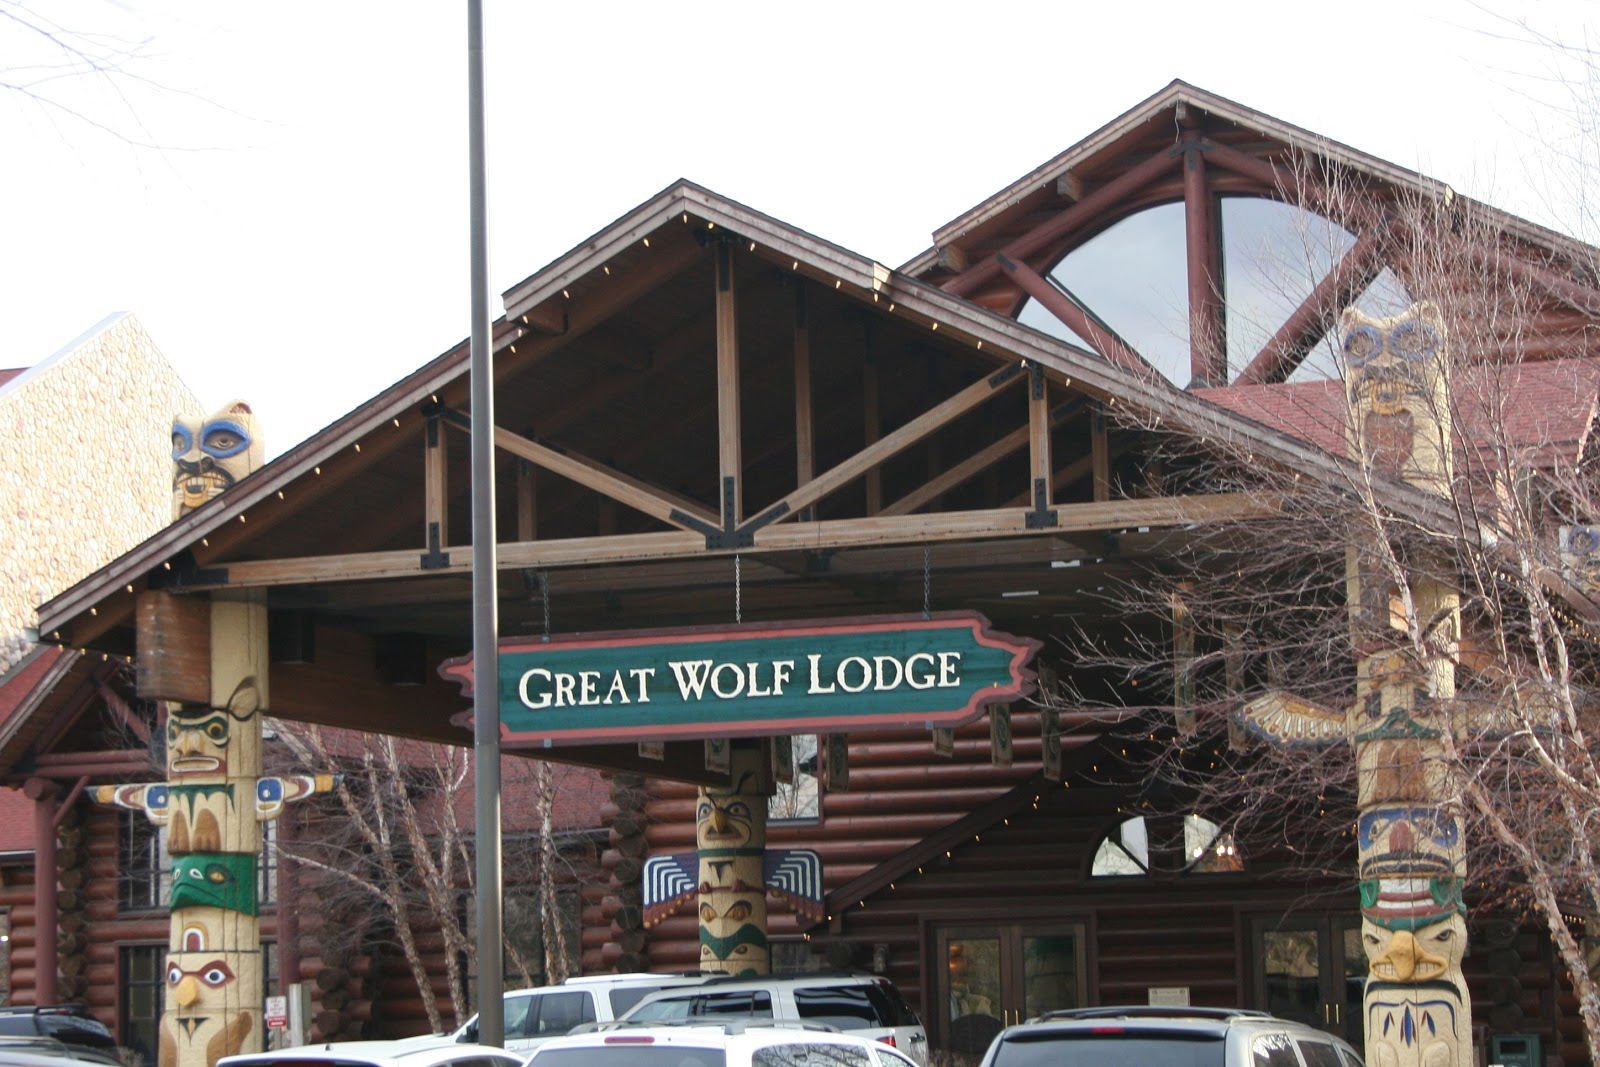 great wolf lodge weekend Family trip to great wolf lodge in washington state weekend at wolf lodge water park in grand mound wa - duration: 9:17.